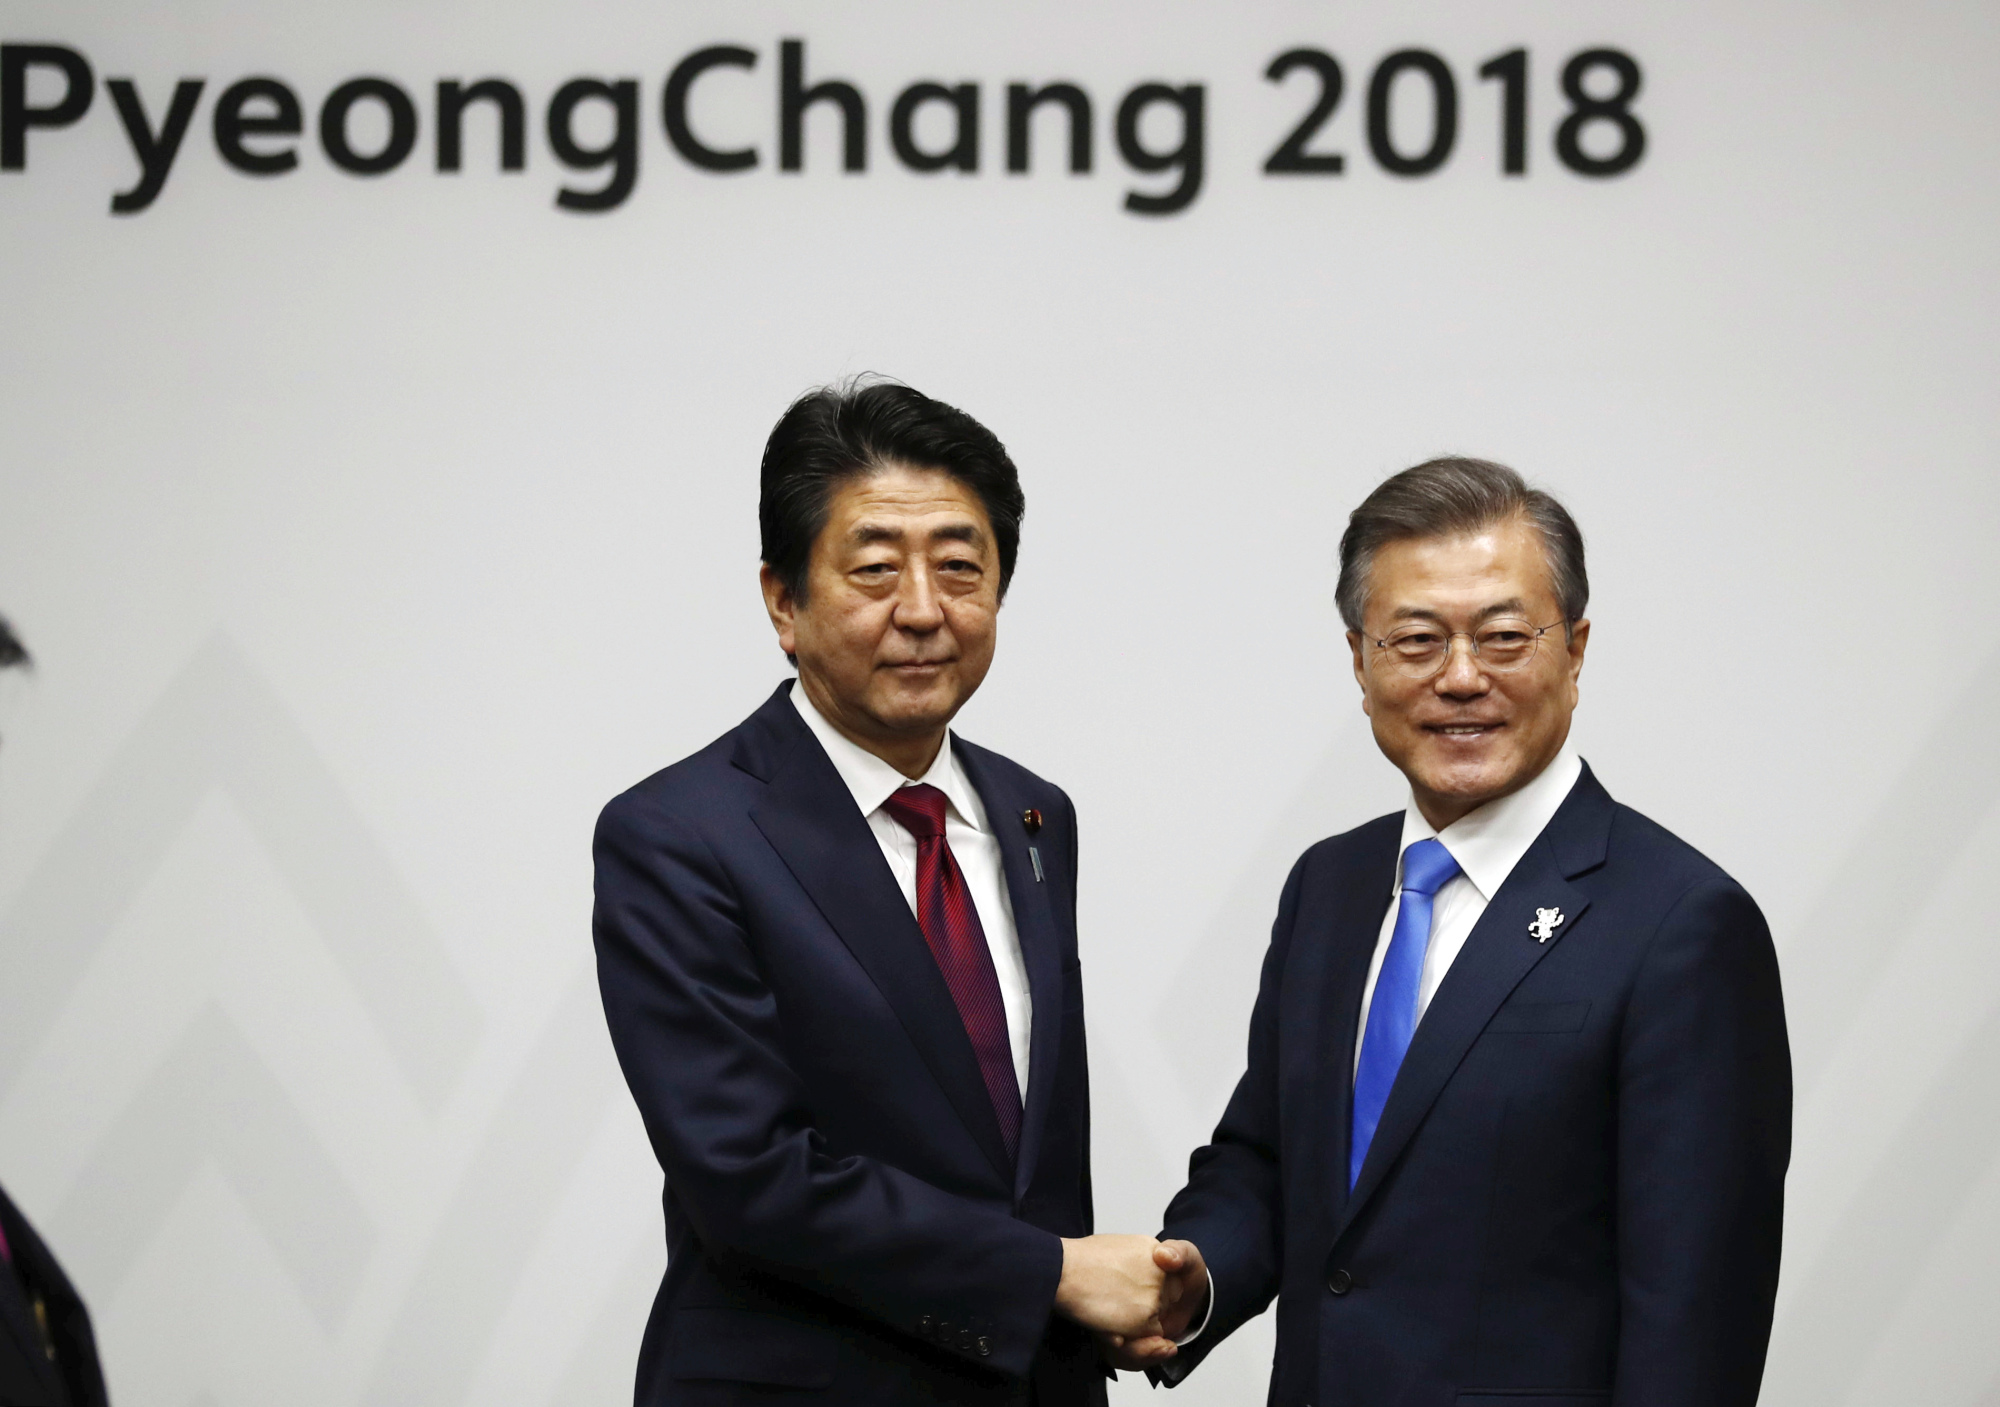 Prime Minister Shinzo Abe shakes hands with South Korean President Moon Jae-in during their meeting in Pyeongchang, South Korea, on Friday.   AP